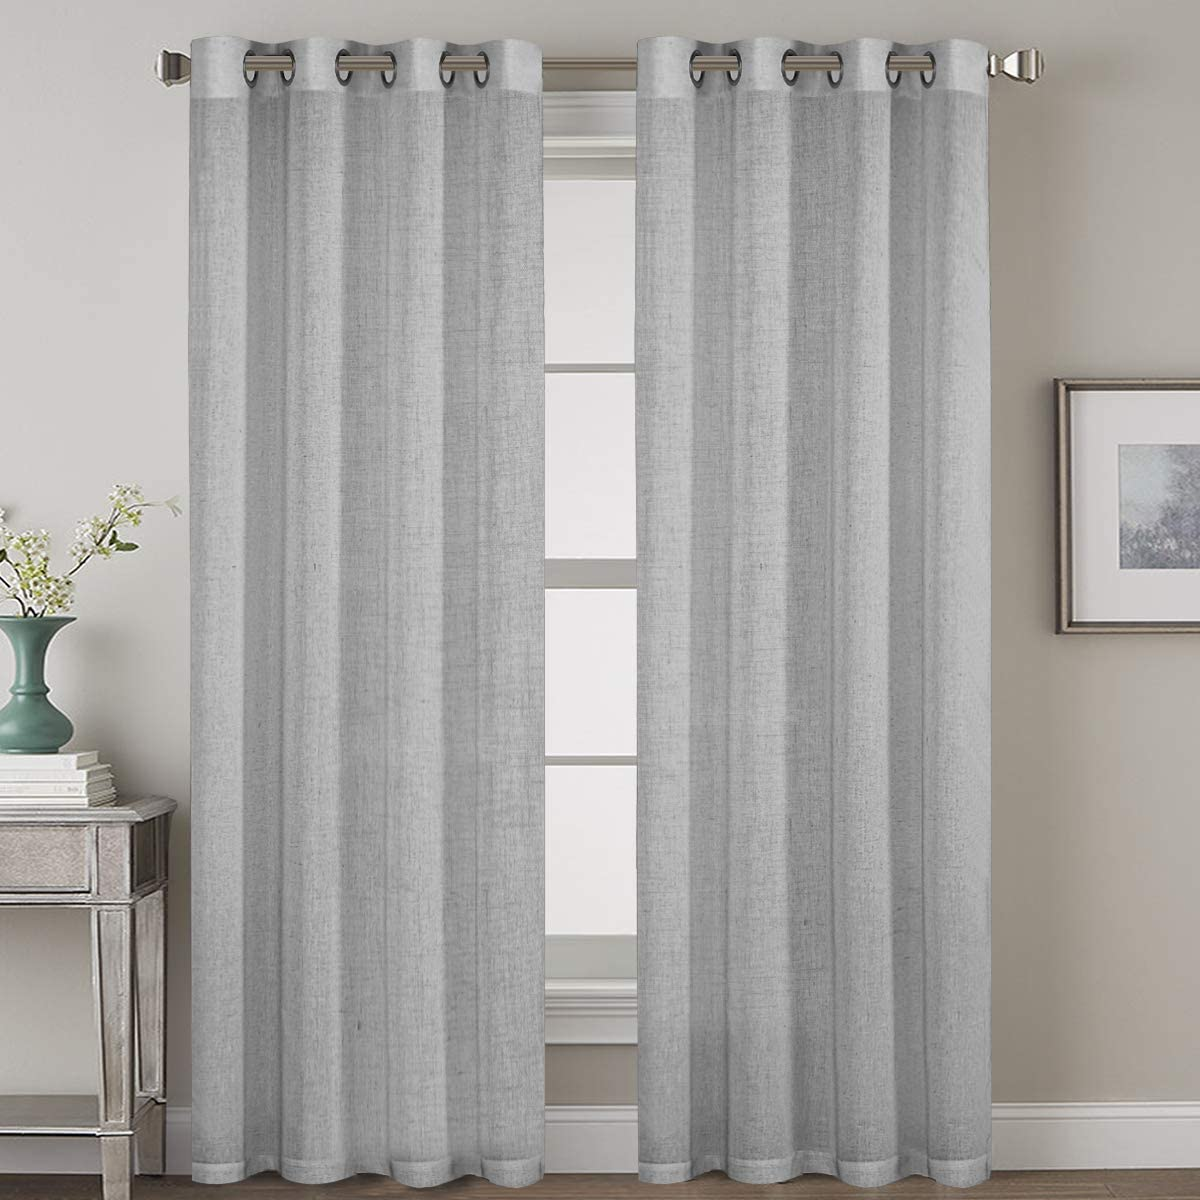 Nickel Grommet Natural Linen Blended Airy Curtains for Living Room Home Decor Soft Rich Material Light Reducing Bedroom Drape Panels, Set of 2, 52 x 84 -Inch - Dove Pattern